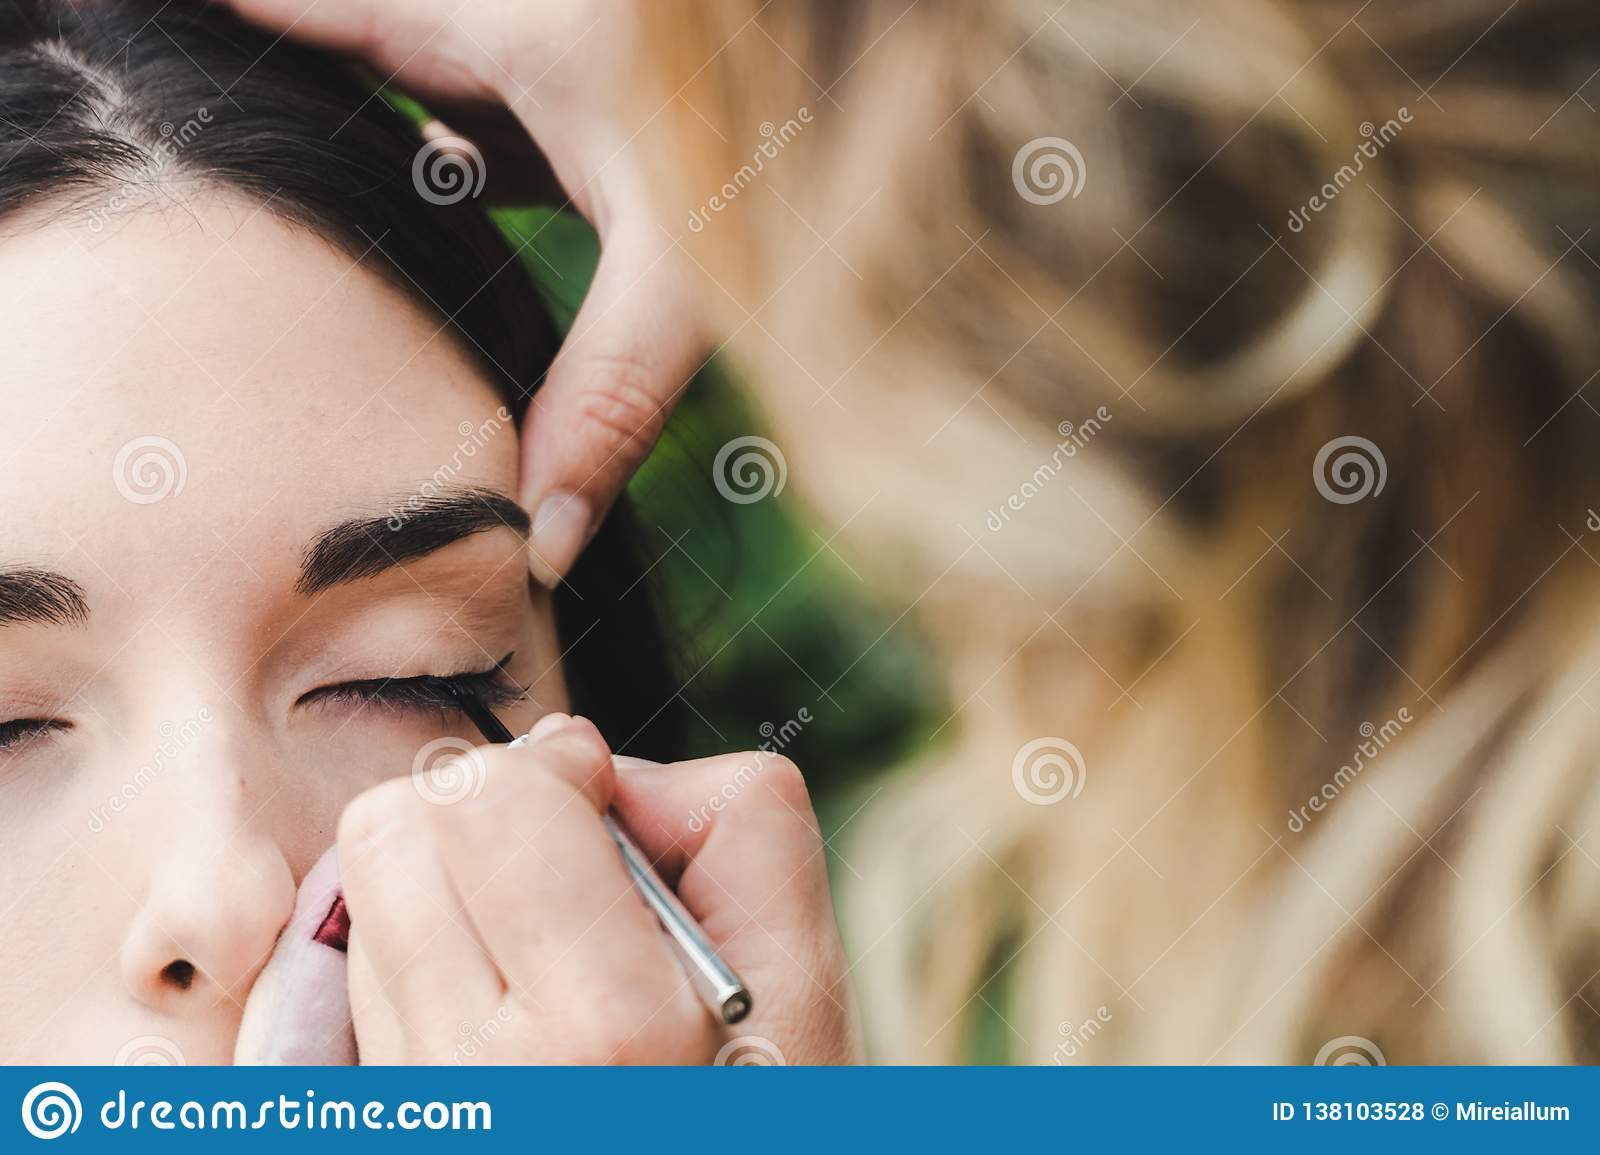 A makeup artist is drawing the eye line to a model. It is a close up image